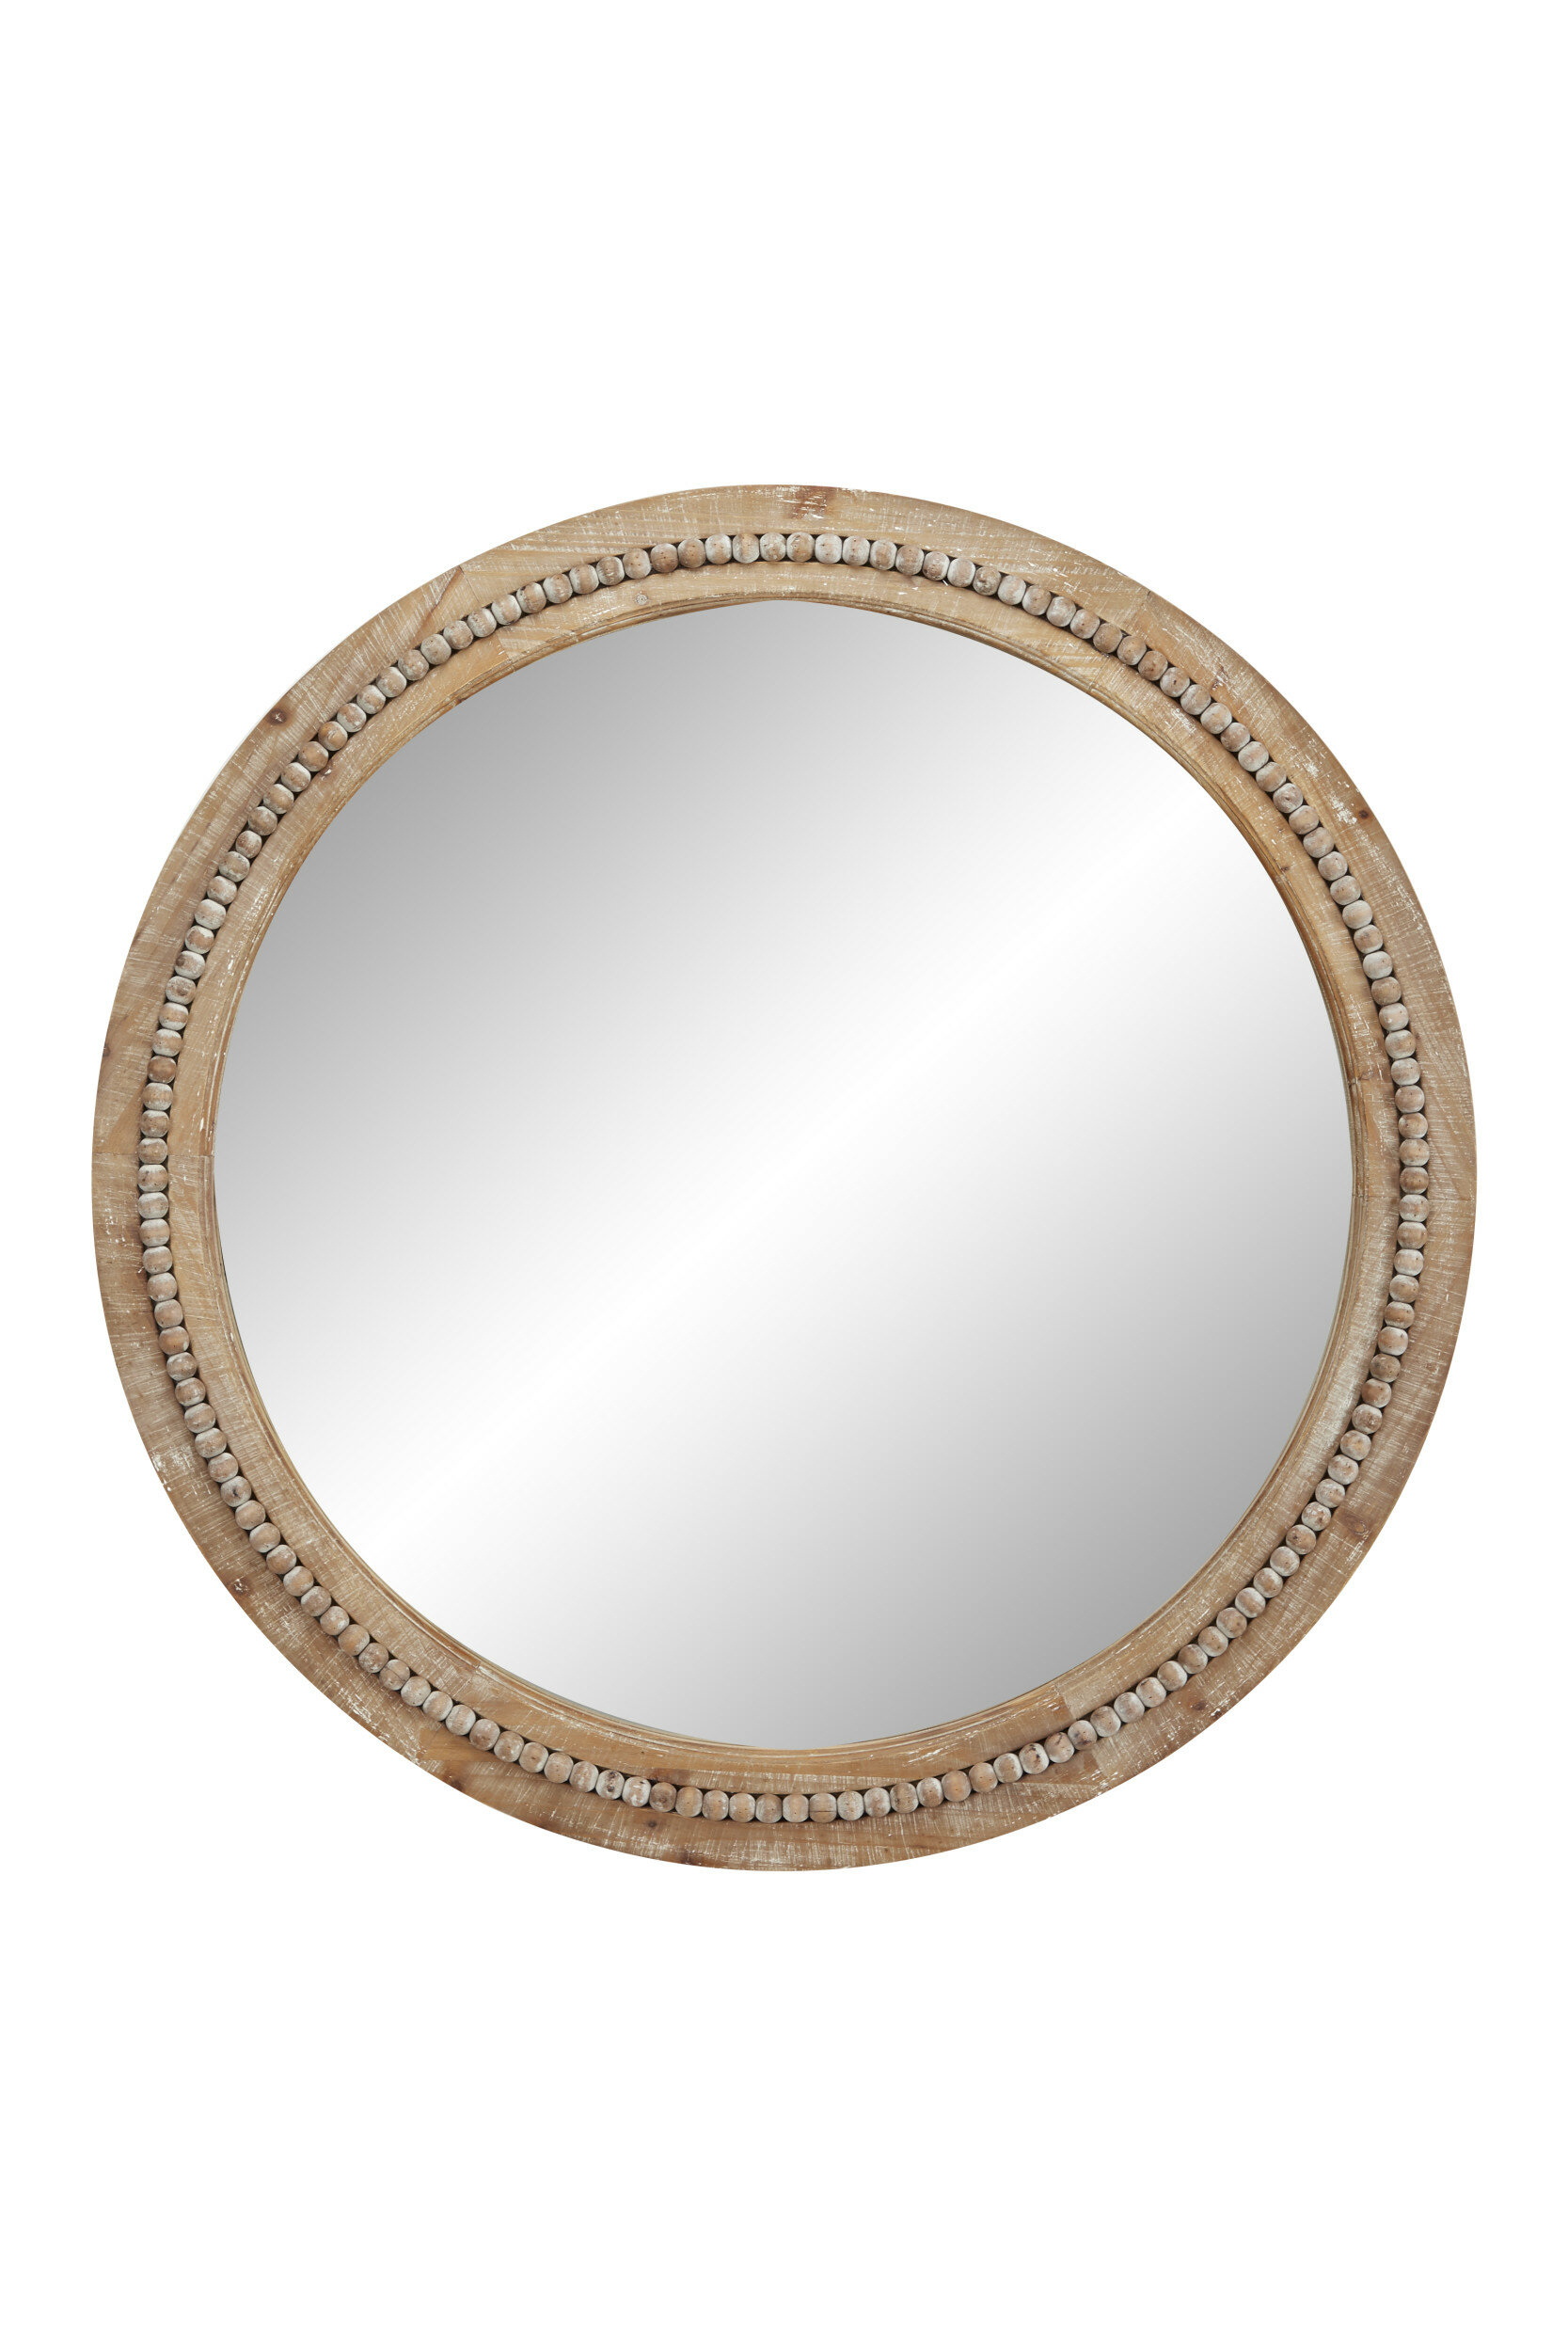 Oakton Round Wood Accent Mirror Pertaining To Wood Accent Mirrors (View 12 of 30)